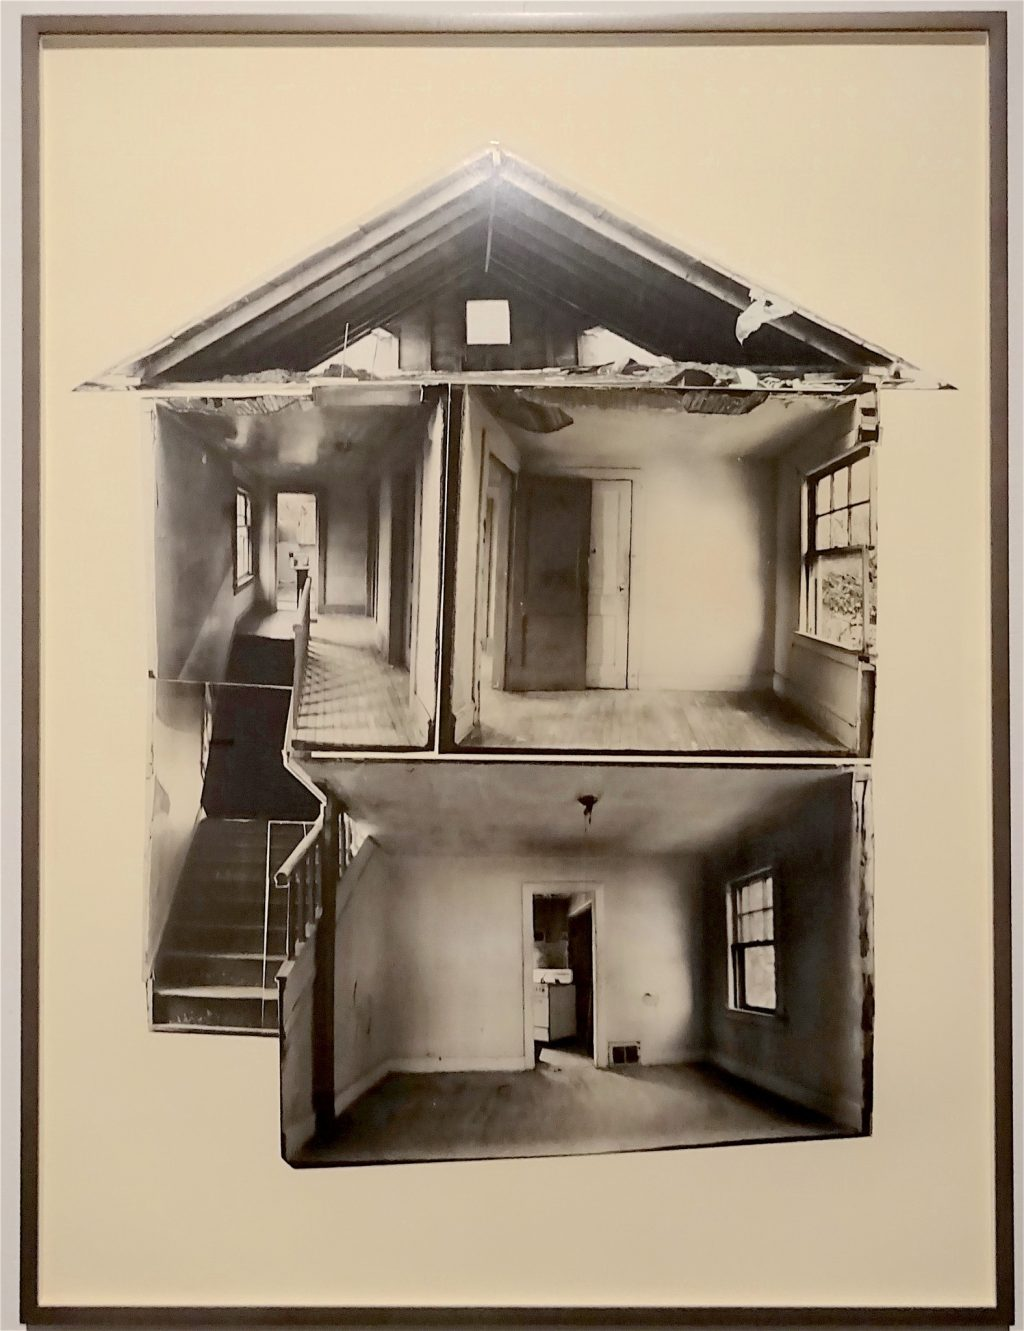 "ゴードン・マッタ・クラーク Gordon Matta-Clark ""Day's End"" 1974, 5 gelatin silver prints, collaged, Courtesy The Estate of Gordon Matta-Clark and David Zwirner, New York / London / Hongkong"